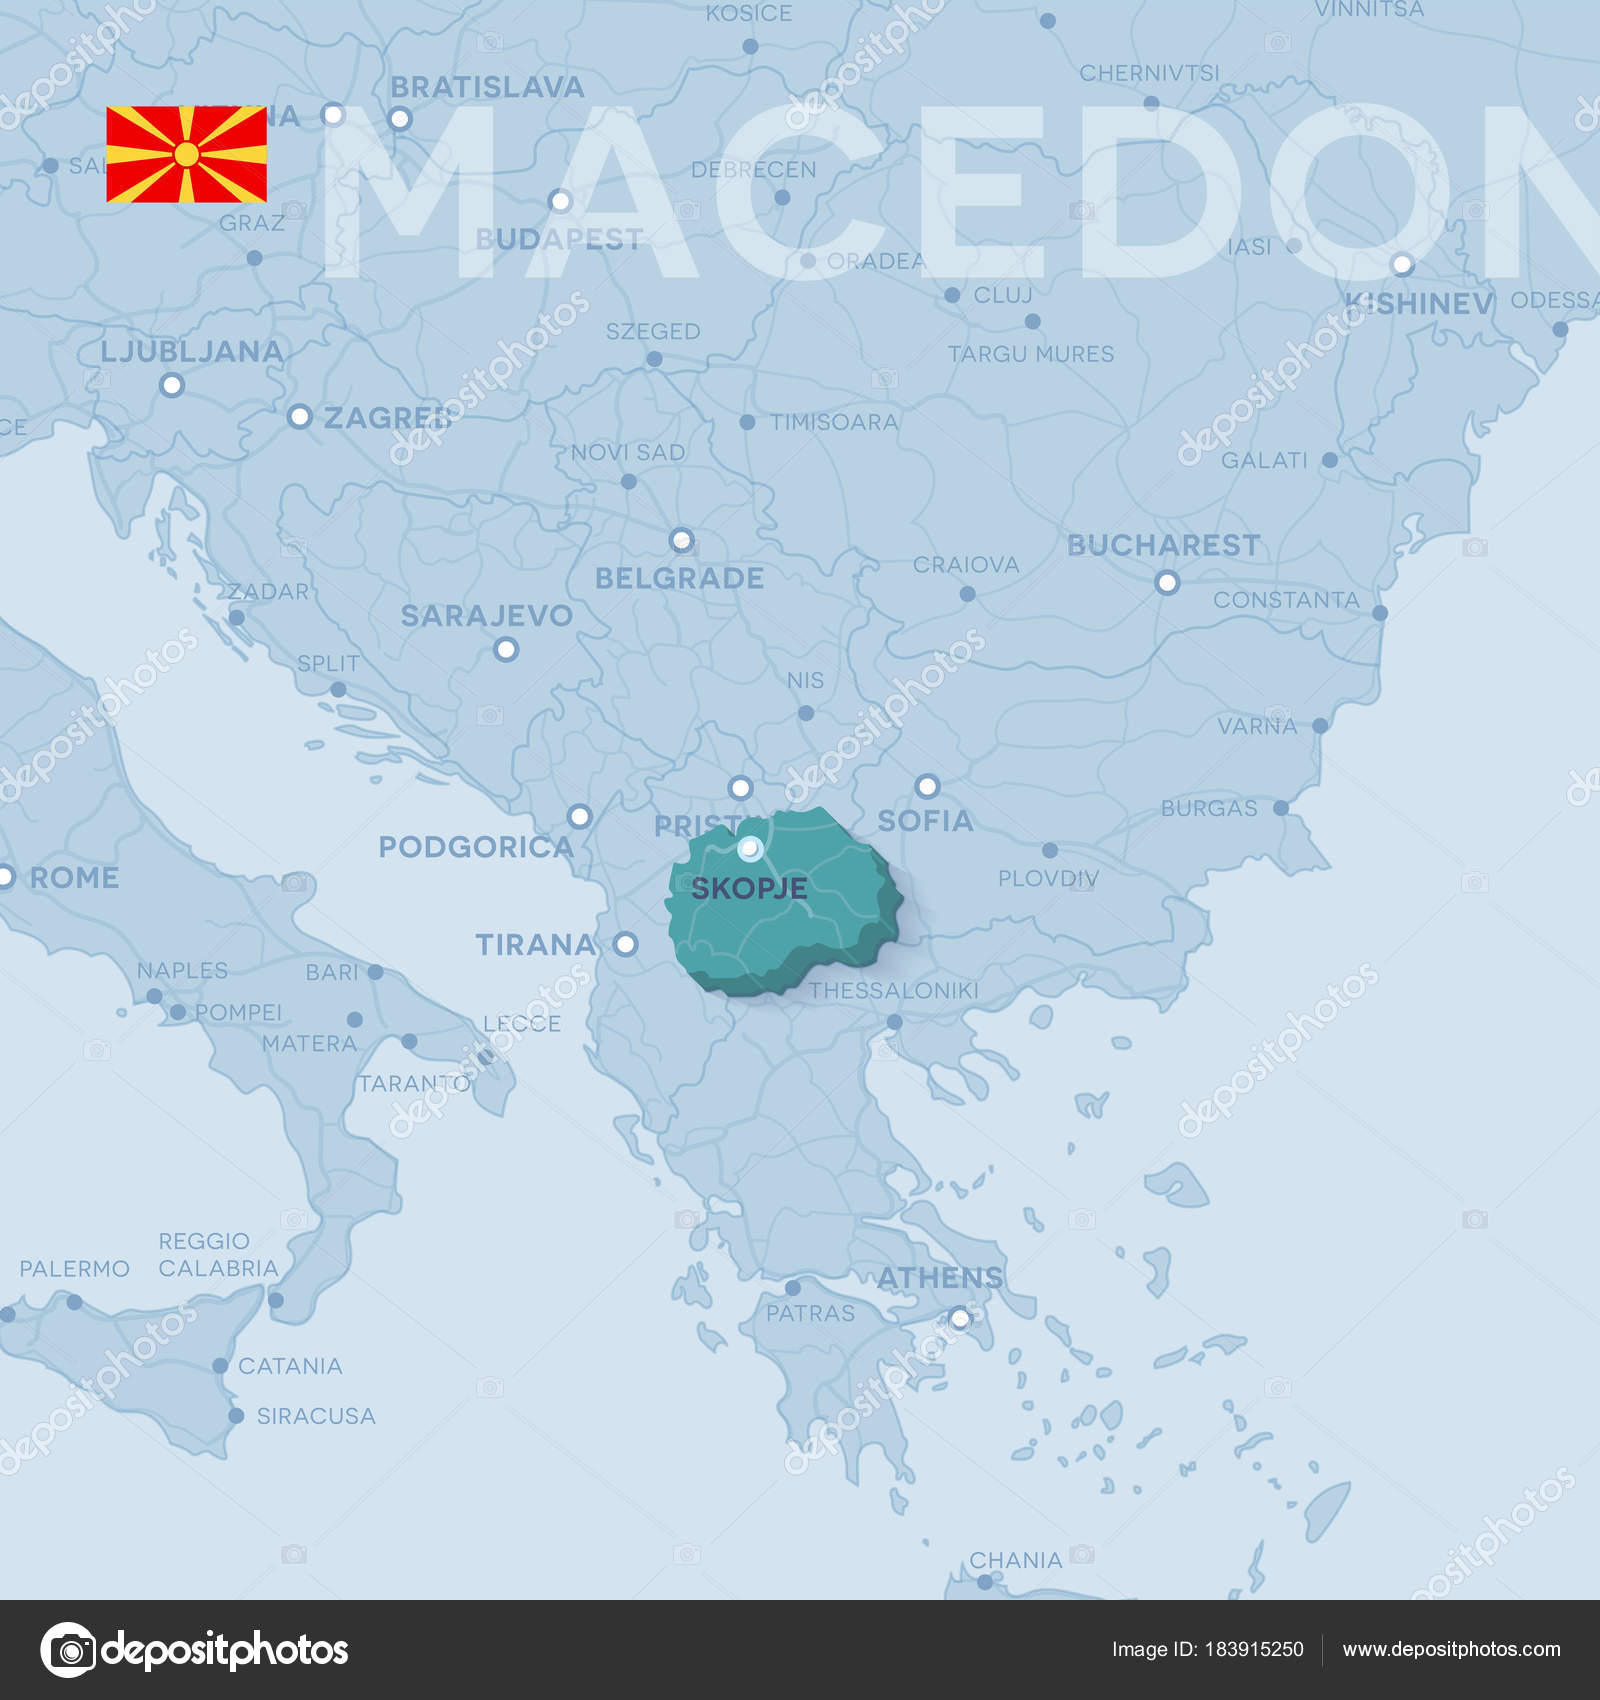 Map of cities and roads in macedonia stock vector snyde 183915250 3d map of cities and roads in europe countries and their neighbors vector by snyde publicscrutiny Choice Image